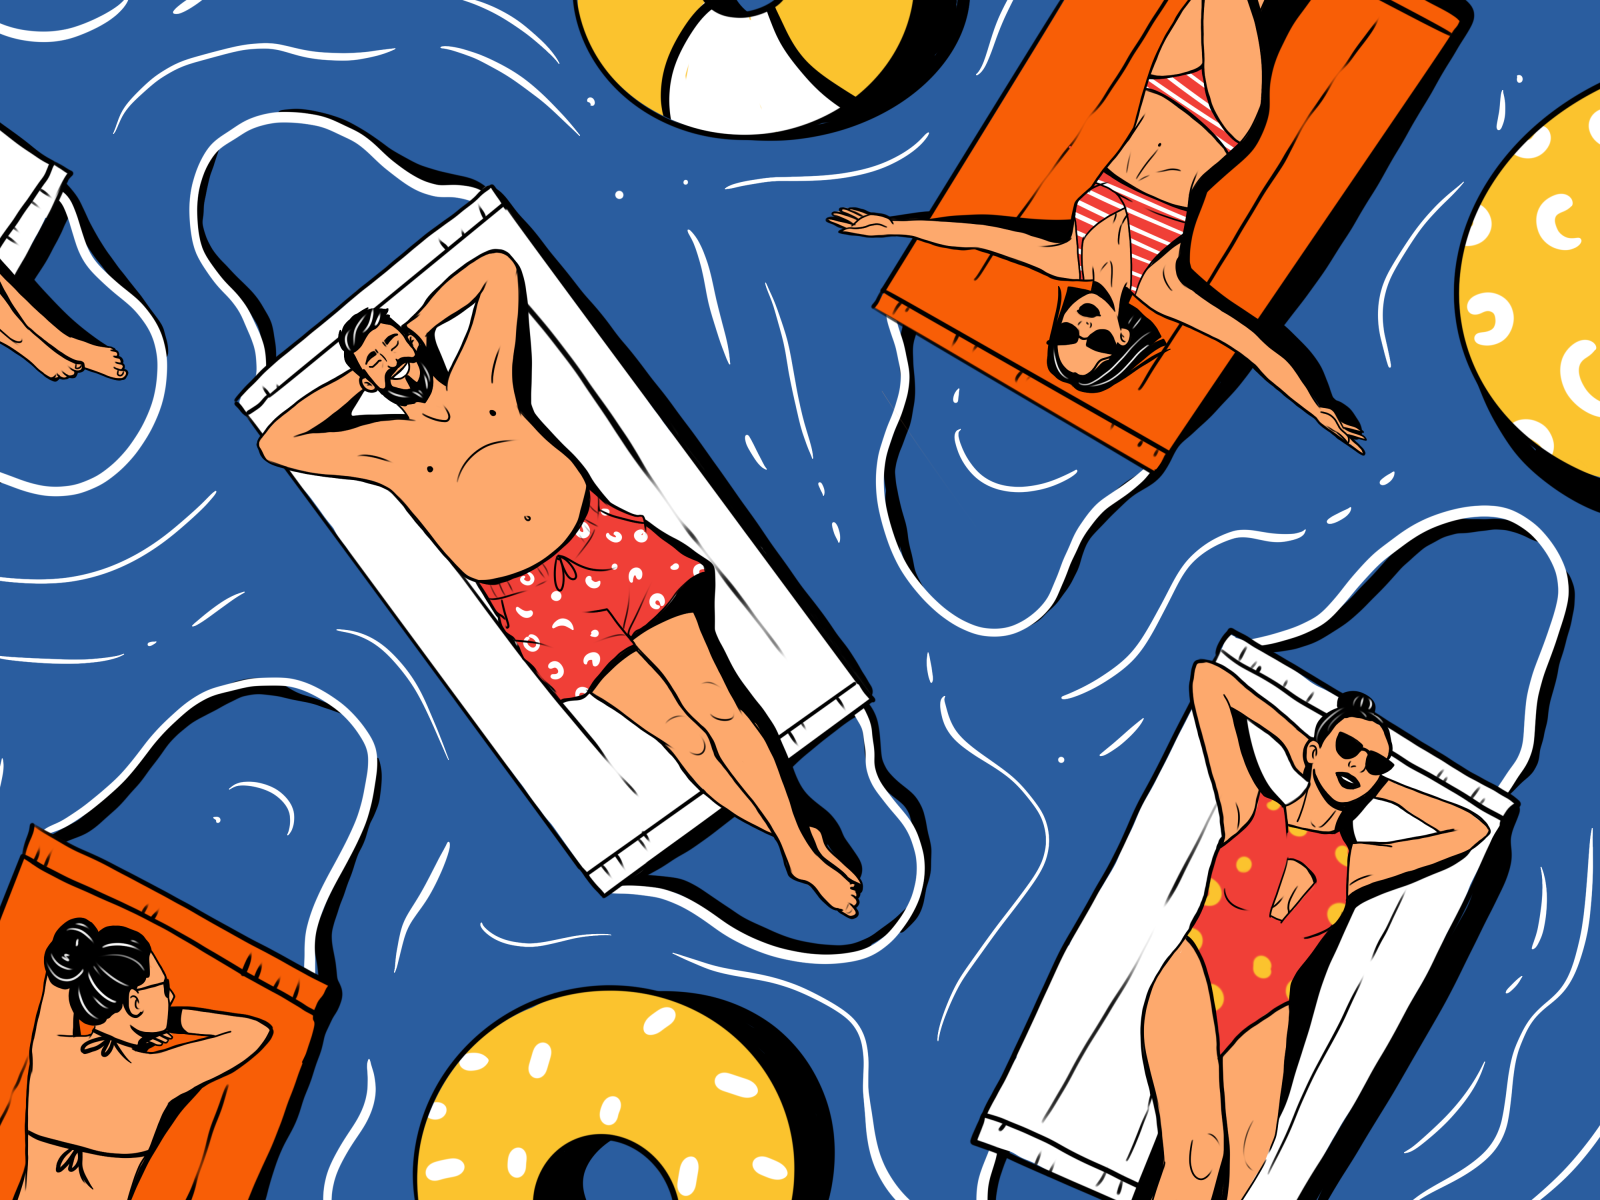 swim safely pandemic illustration